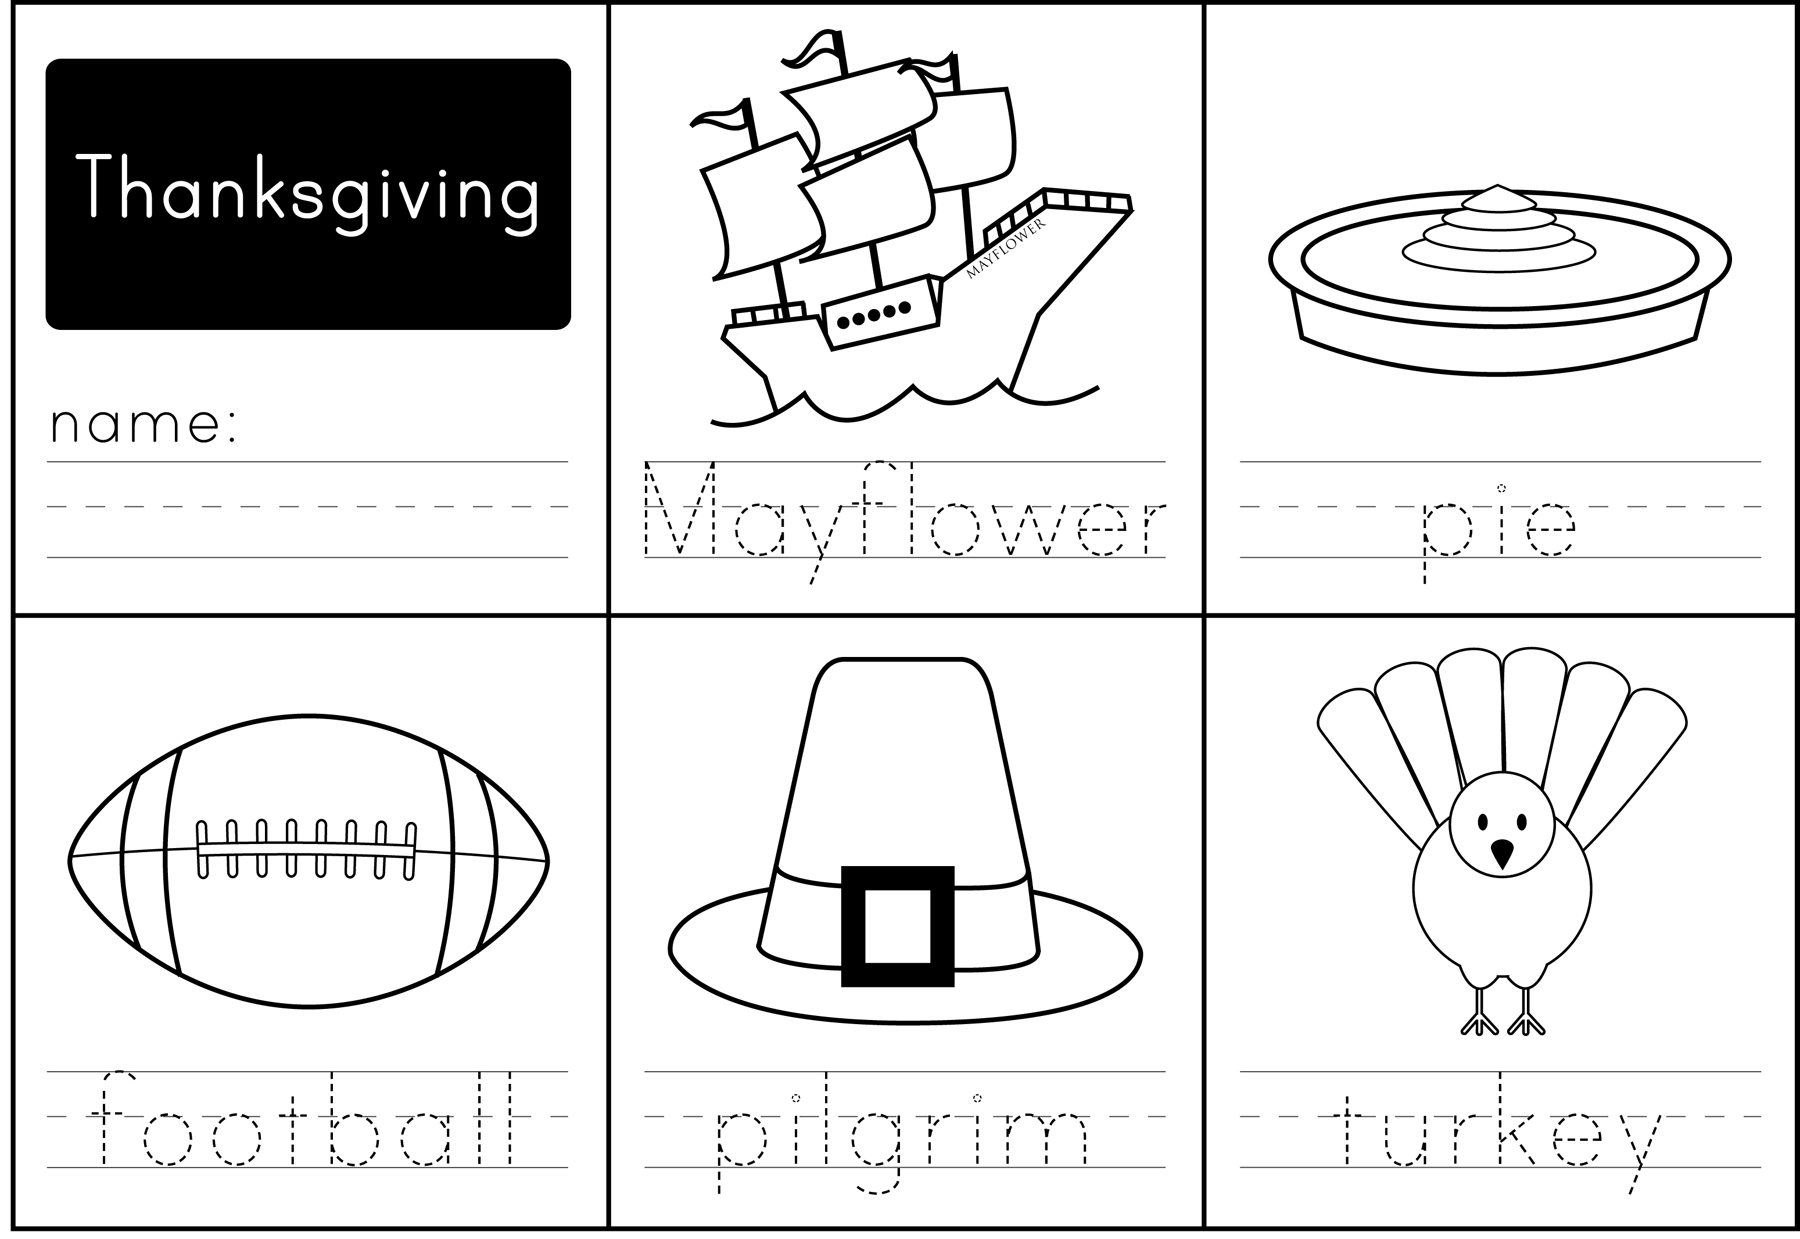 Thanksgiving Activities - Paging Supermom - Free Printable Thanksgiving Activities For Preschoolers